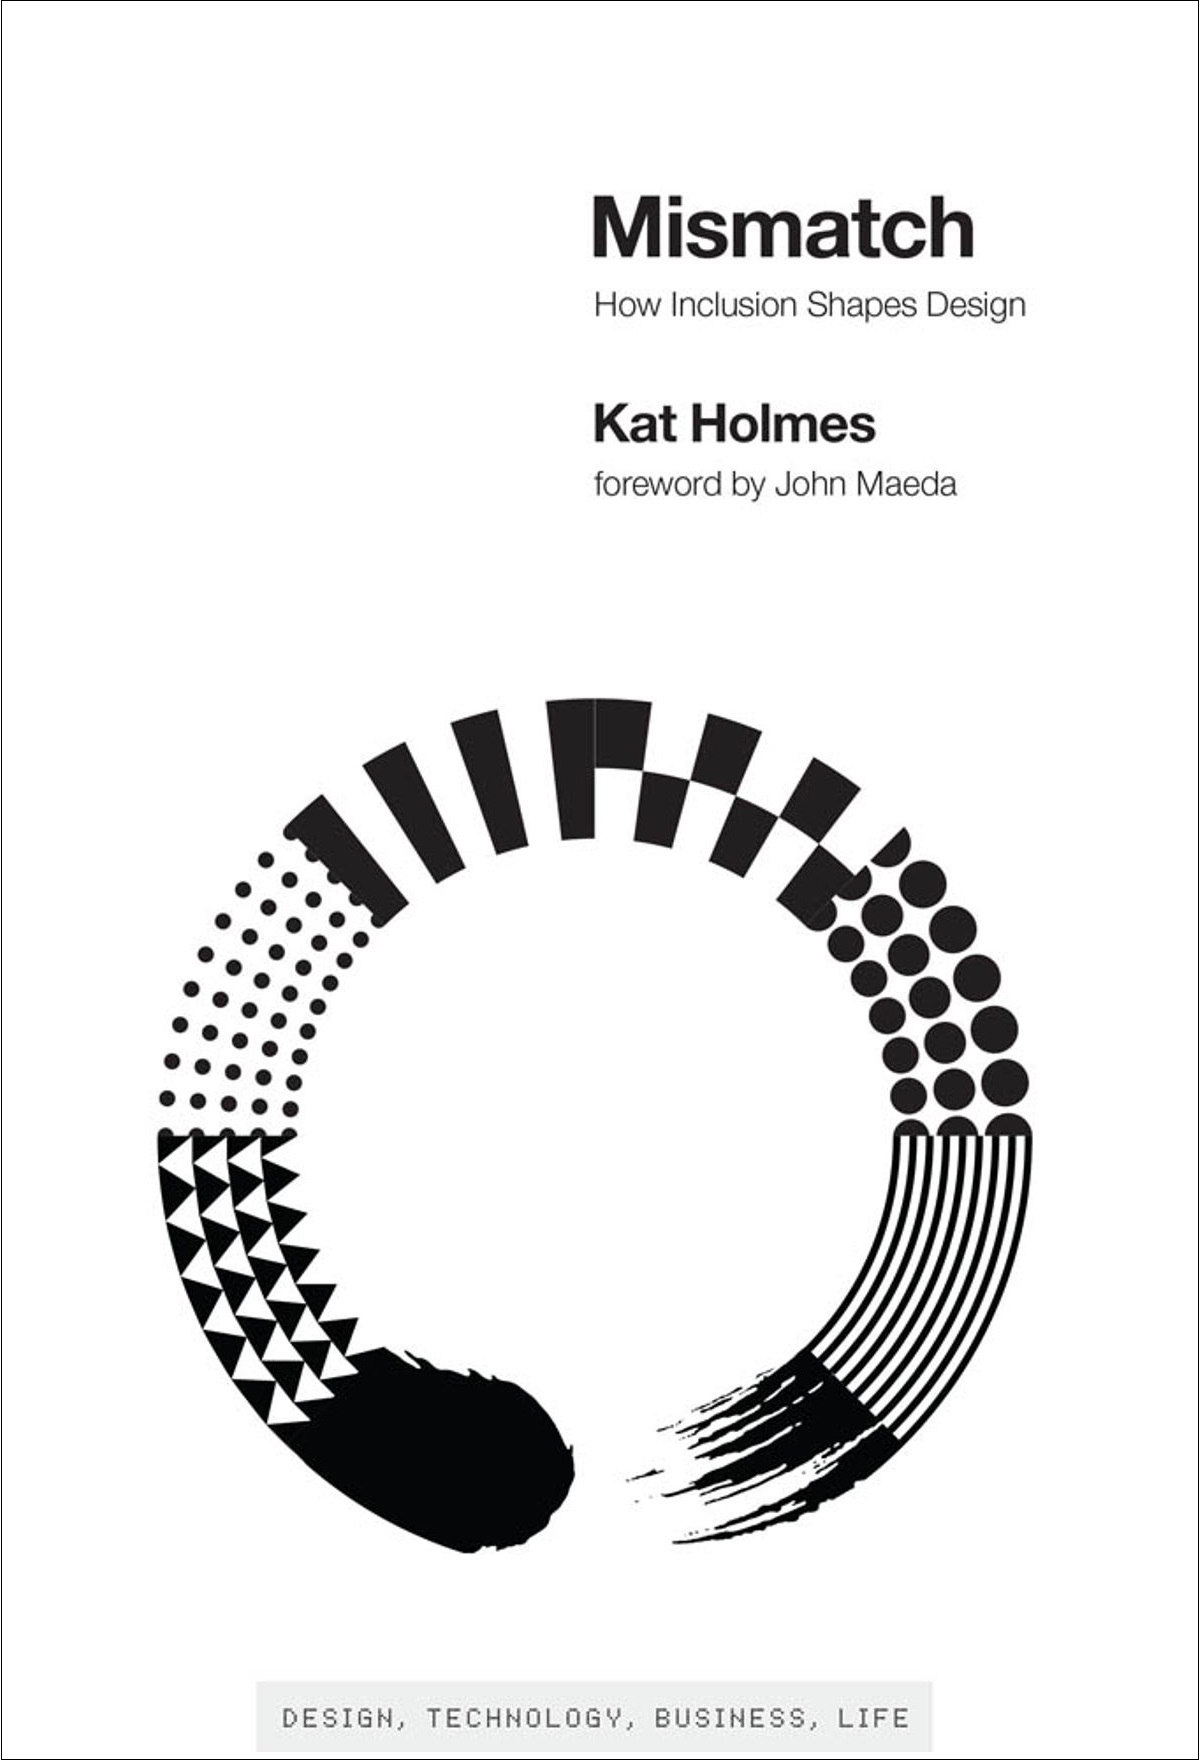 Mismatch How Inclusion Shapes Design (Simplicity Design, Technology, Business, Life) 1st Edition